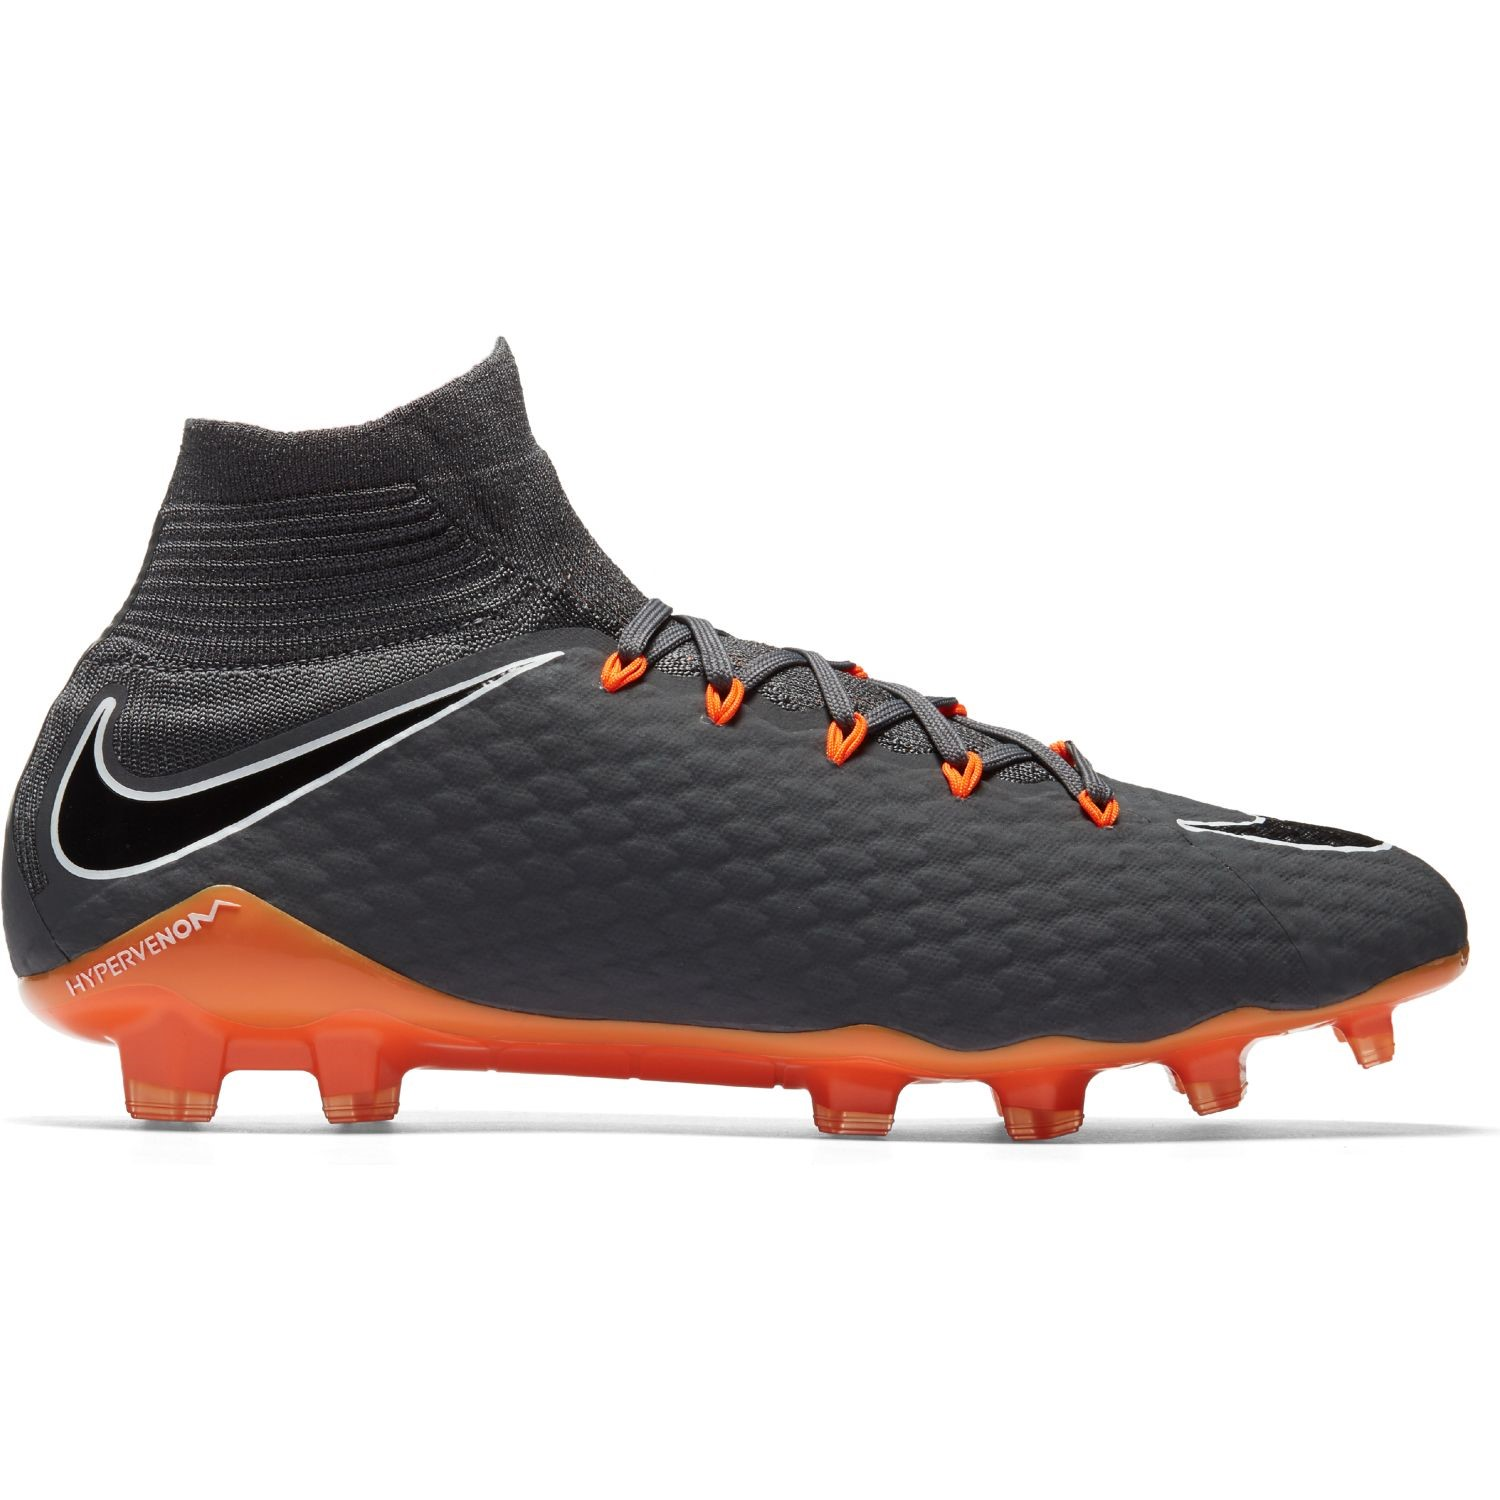 bfbb7453eb5 Nike Hypervenom Phantom III Pro DF FG - Mens Football Boots - Dark  Grey Total